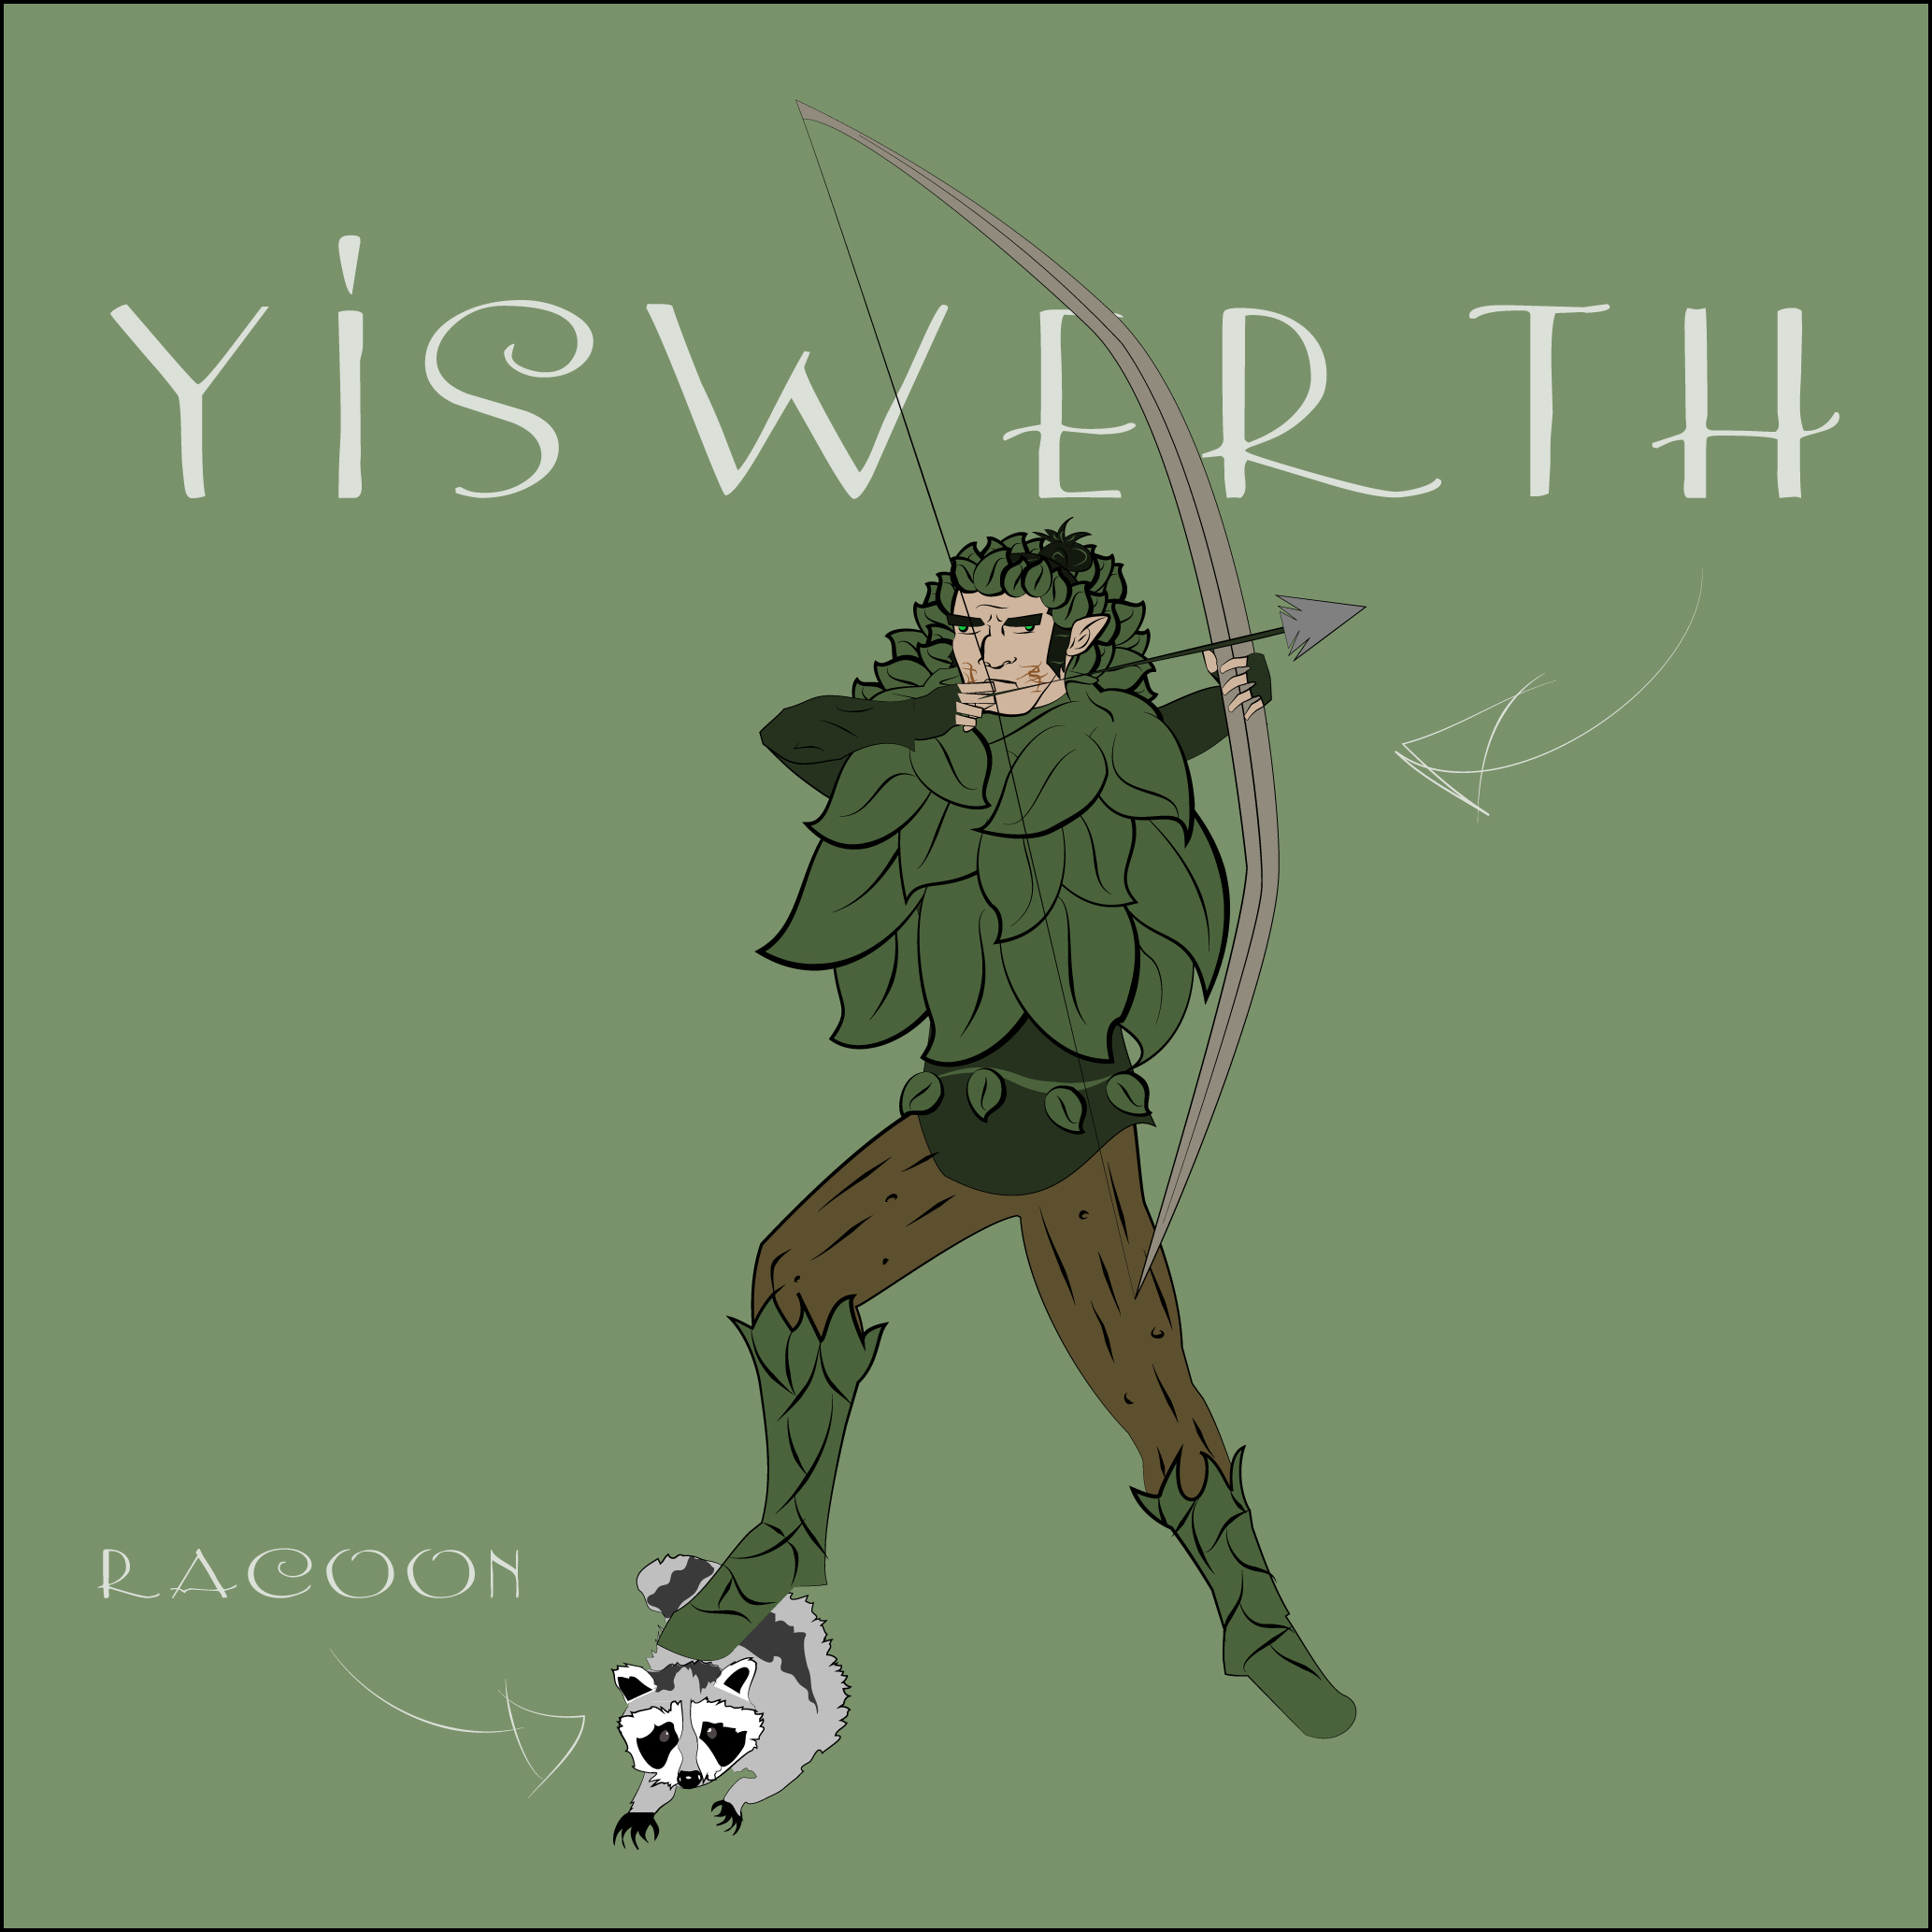 yiswerth